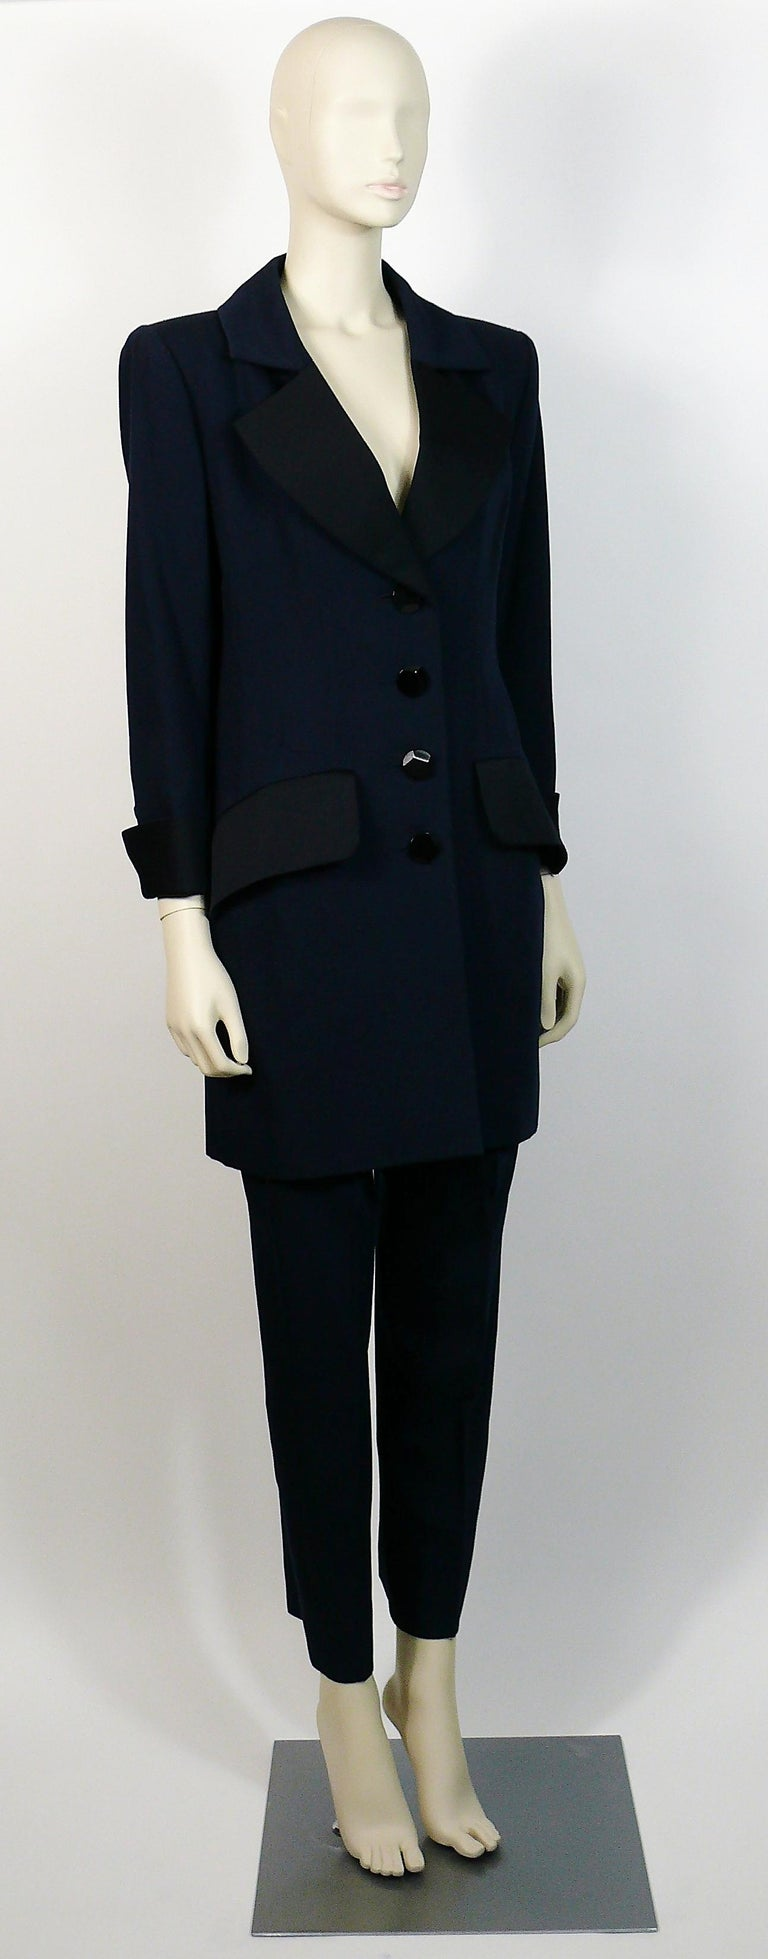 Yves Saint Laurent Ysl Vintage Two Piece Le Smoking Tuxedo